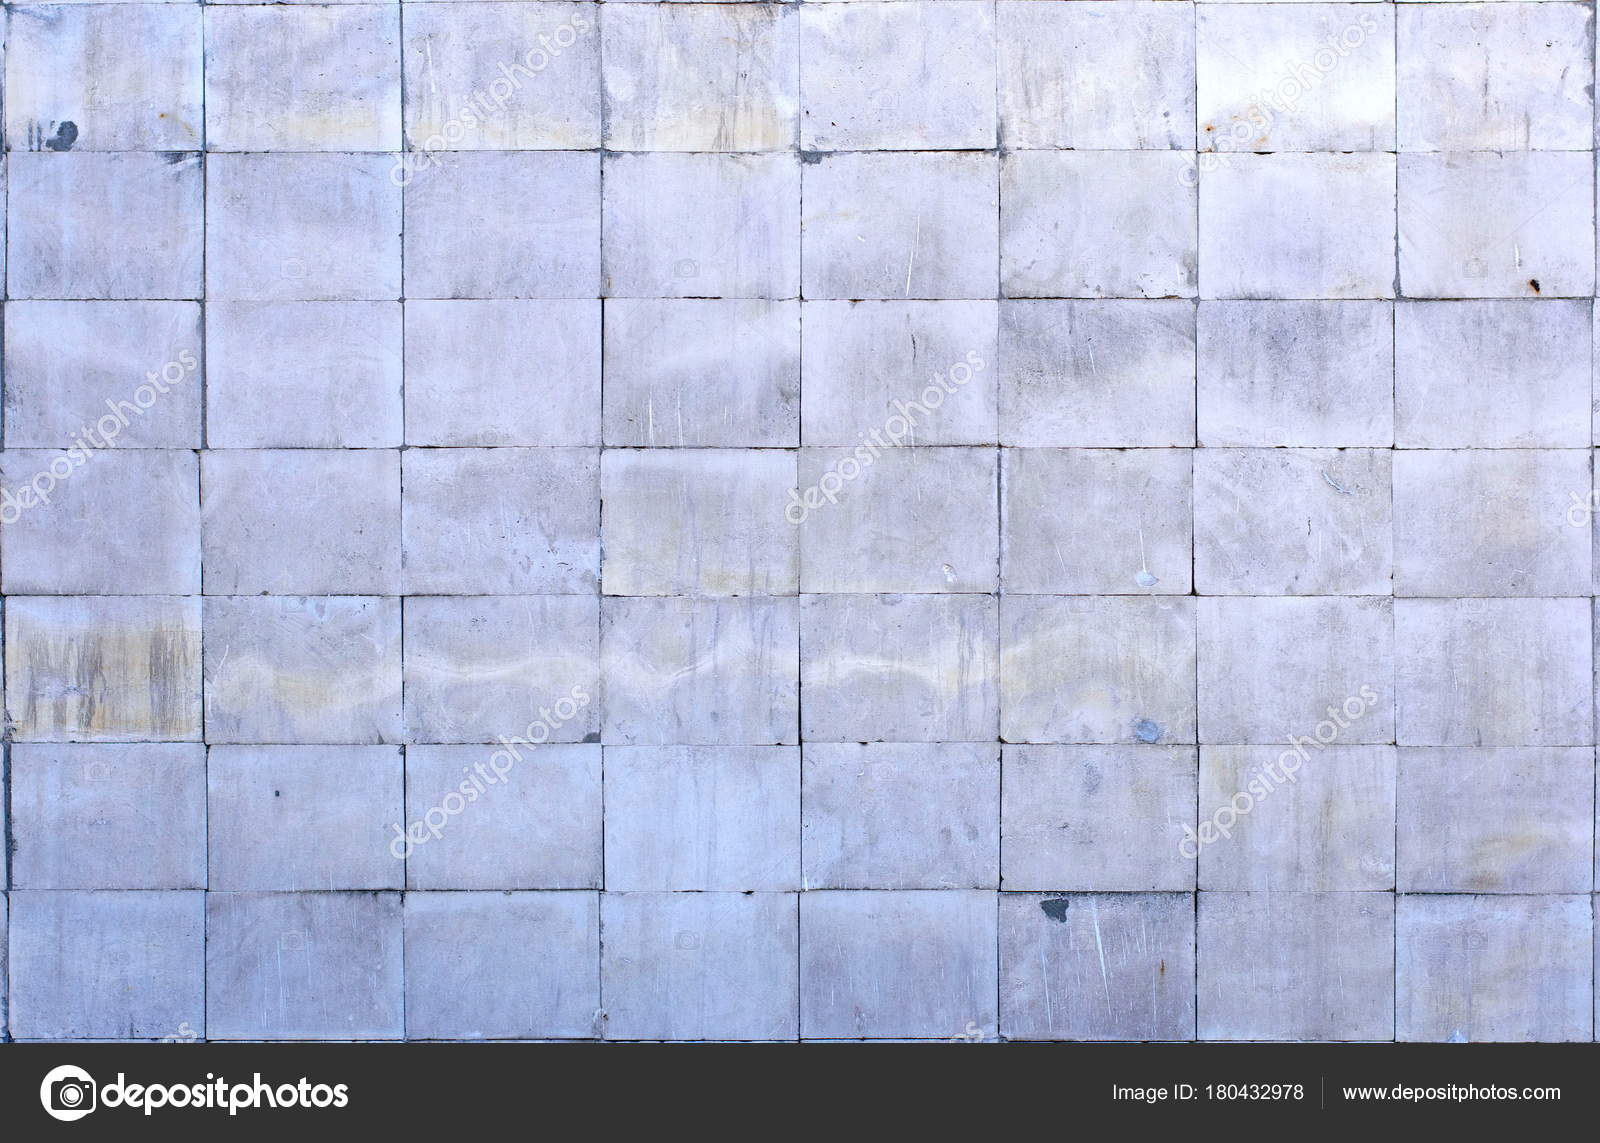 Tile Of Polished Gray Limestone As Finishing Material For Exterior A Building Stock Photo